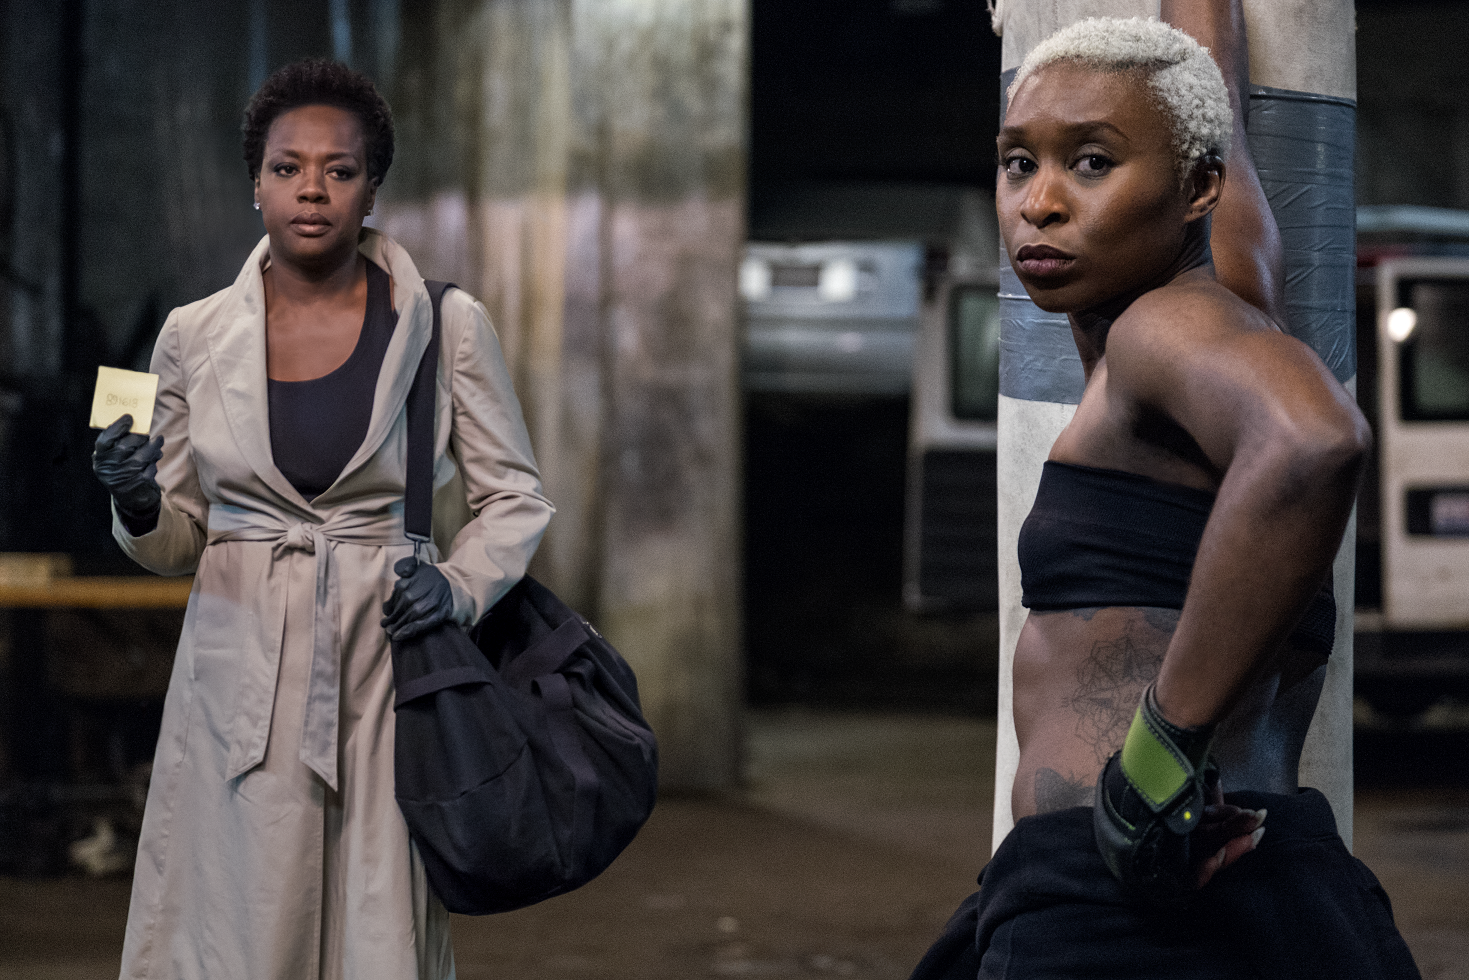 Steve McQueen's Widows: heist movie feels like a strange move for this director – but it isn't